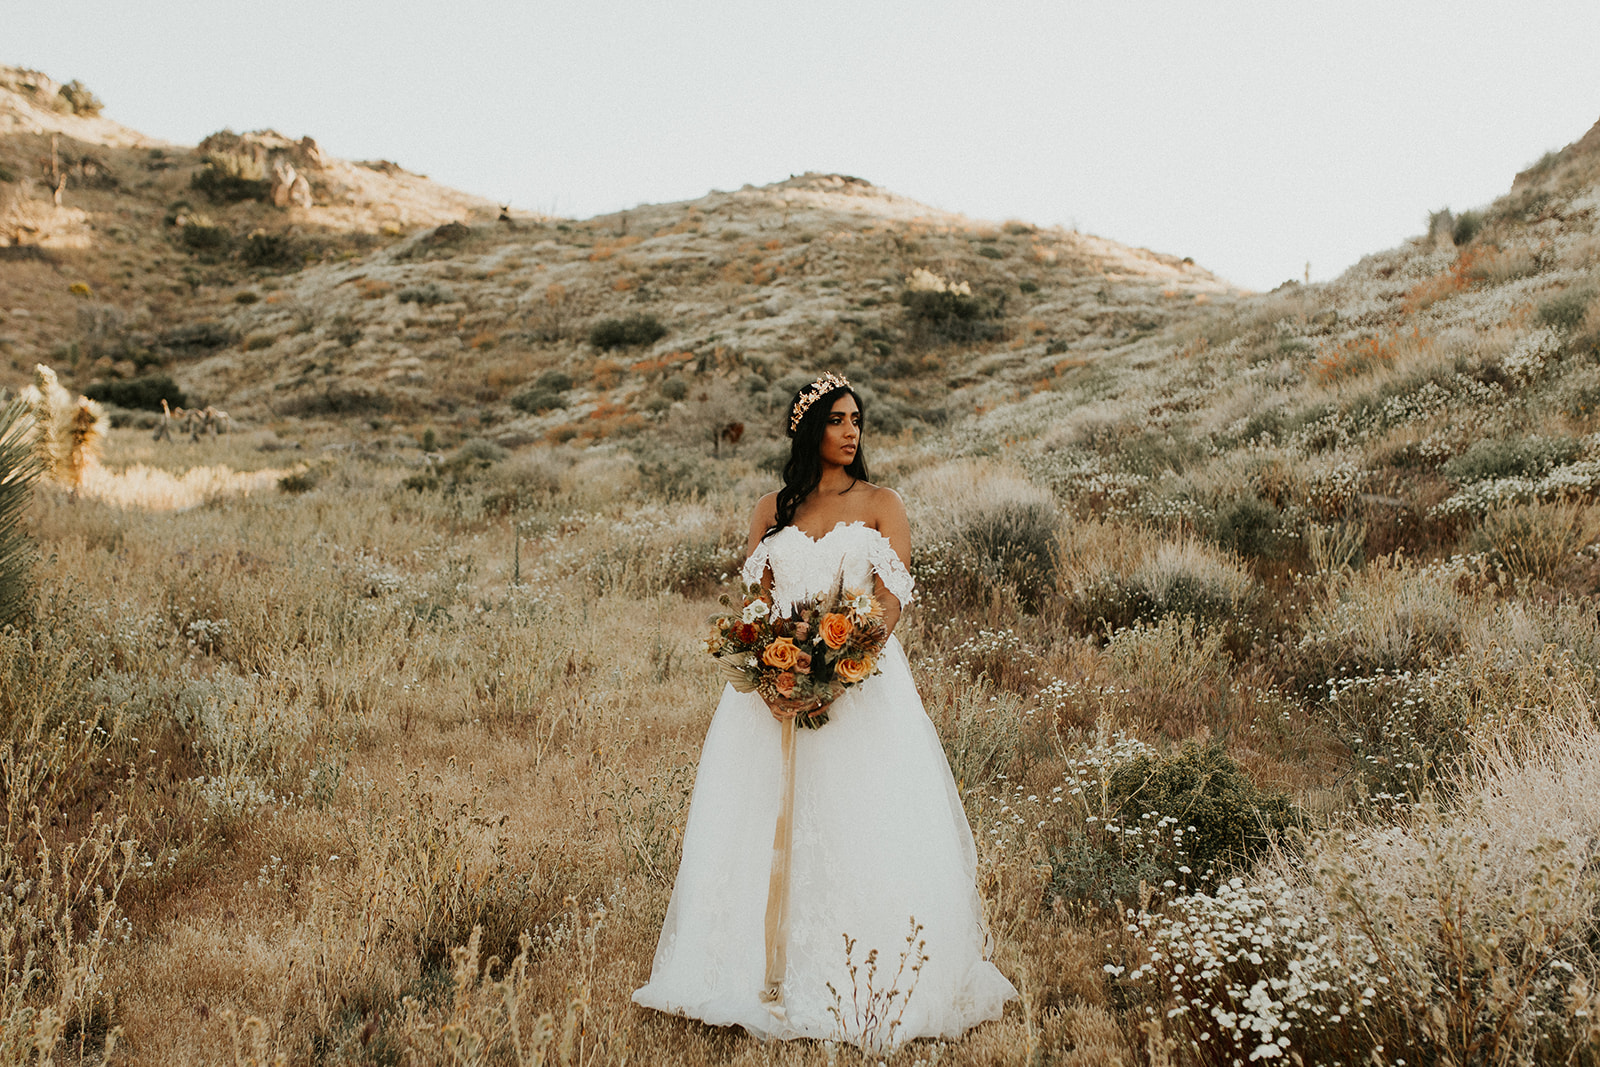 Joshua_Tree_Elopement_Hannah_Alena_Photography-110.jpg